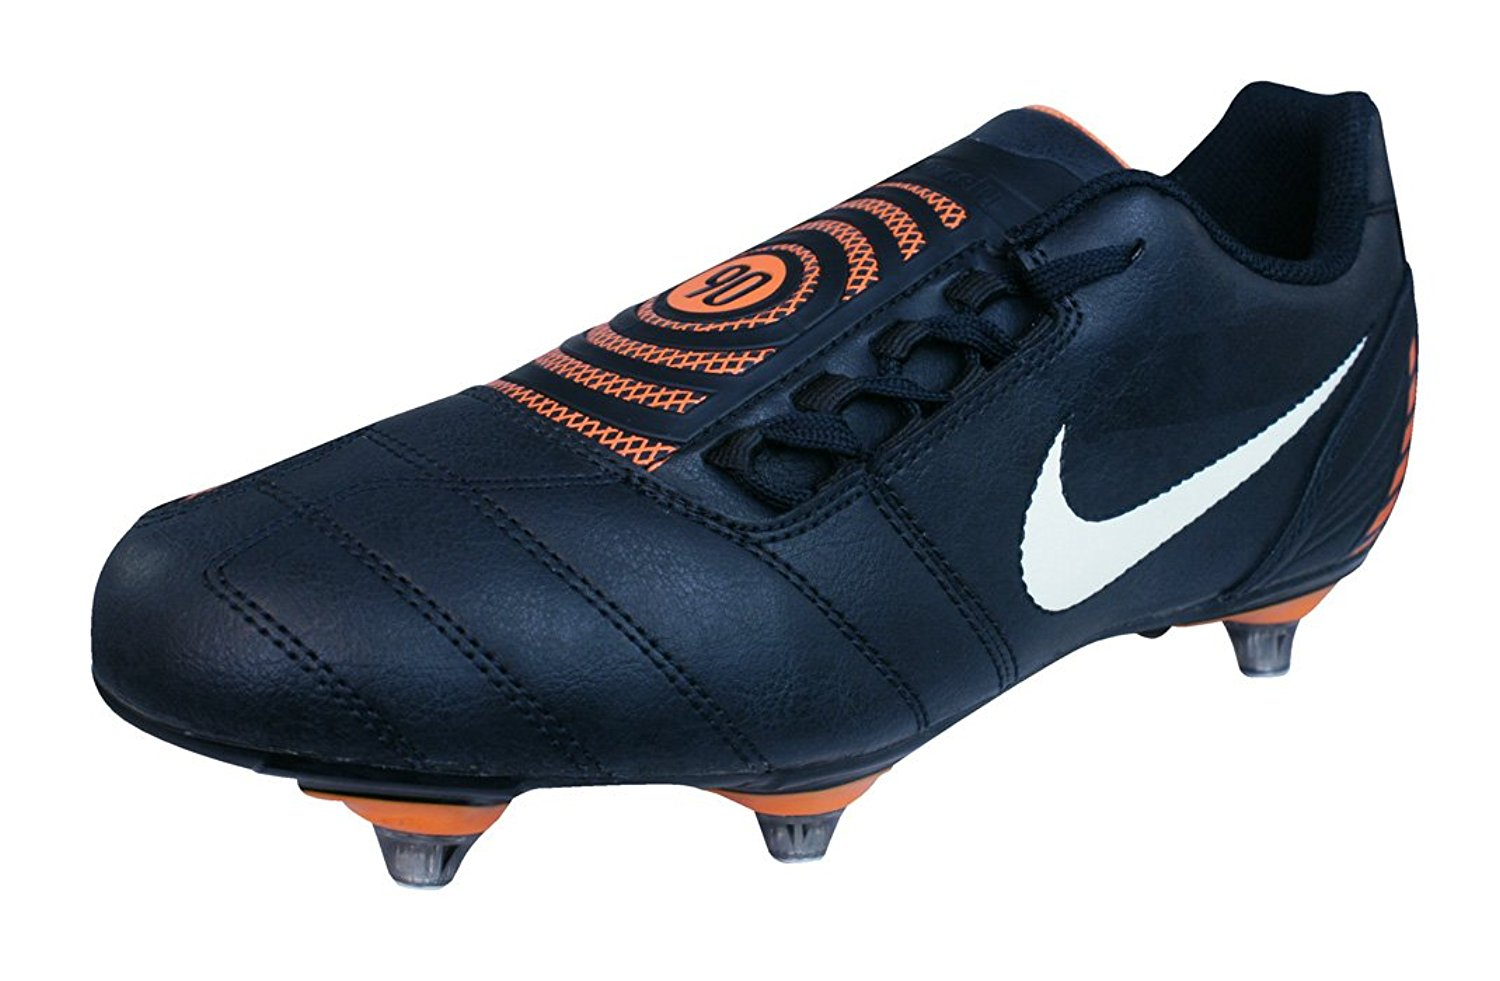 c6e6495bf434 Get Quotations · Nike Total 90 Shoot II Extra SG Boys Soccer Boots   Cleats